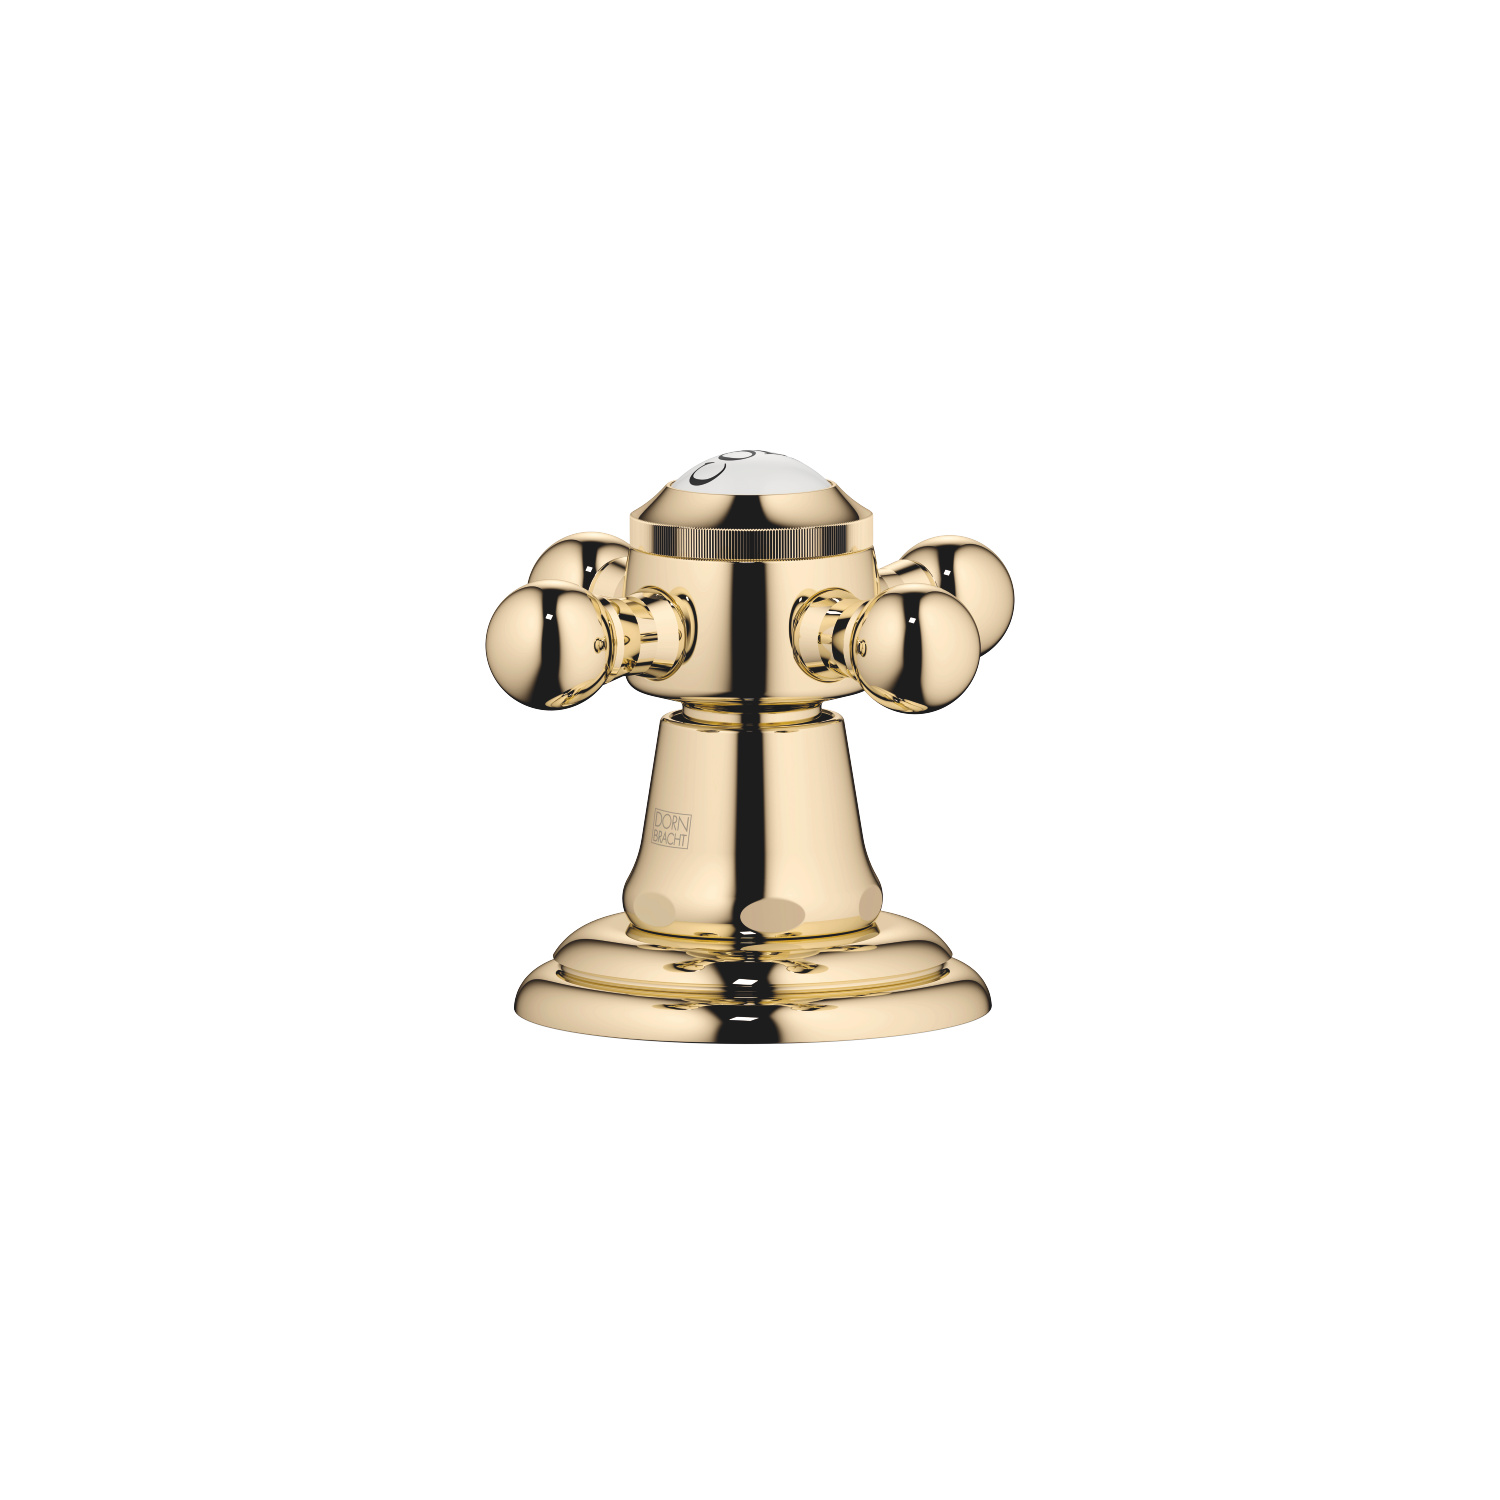 Deck valve clockwise-closing hot or cold - Durabrass